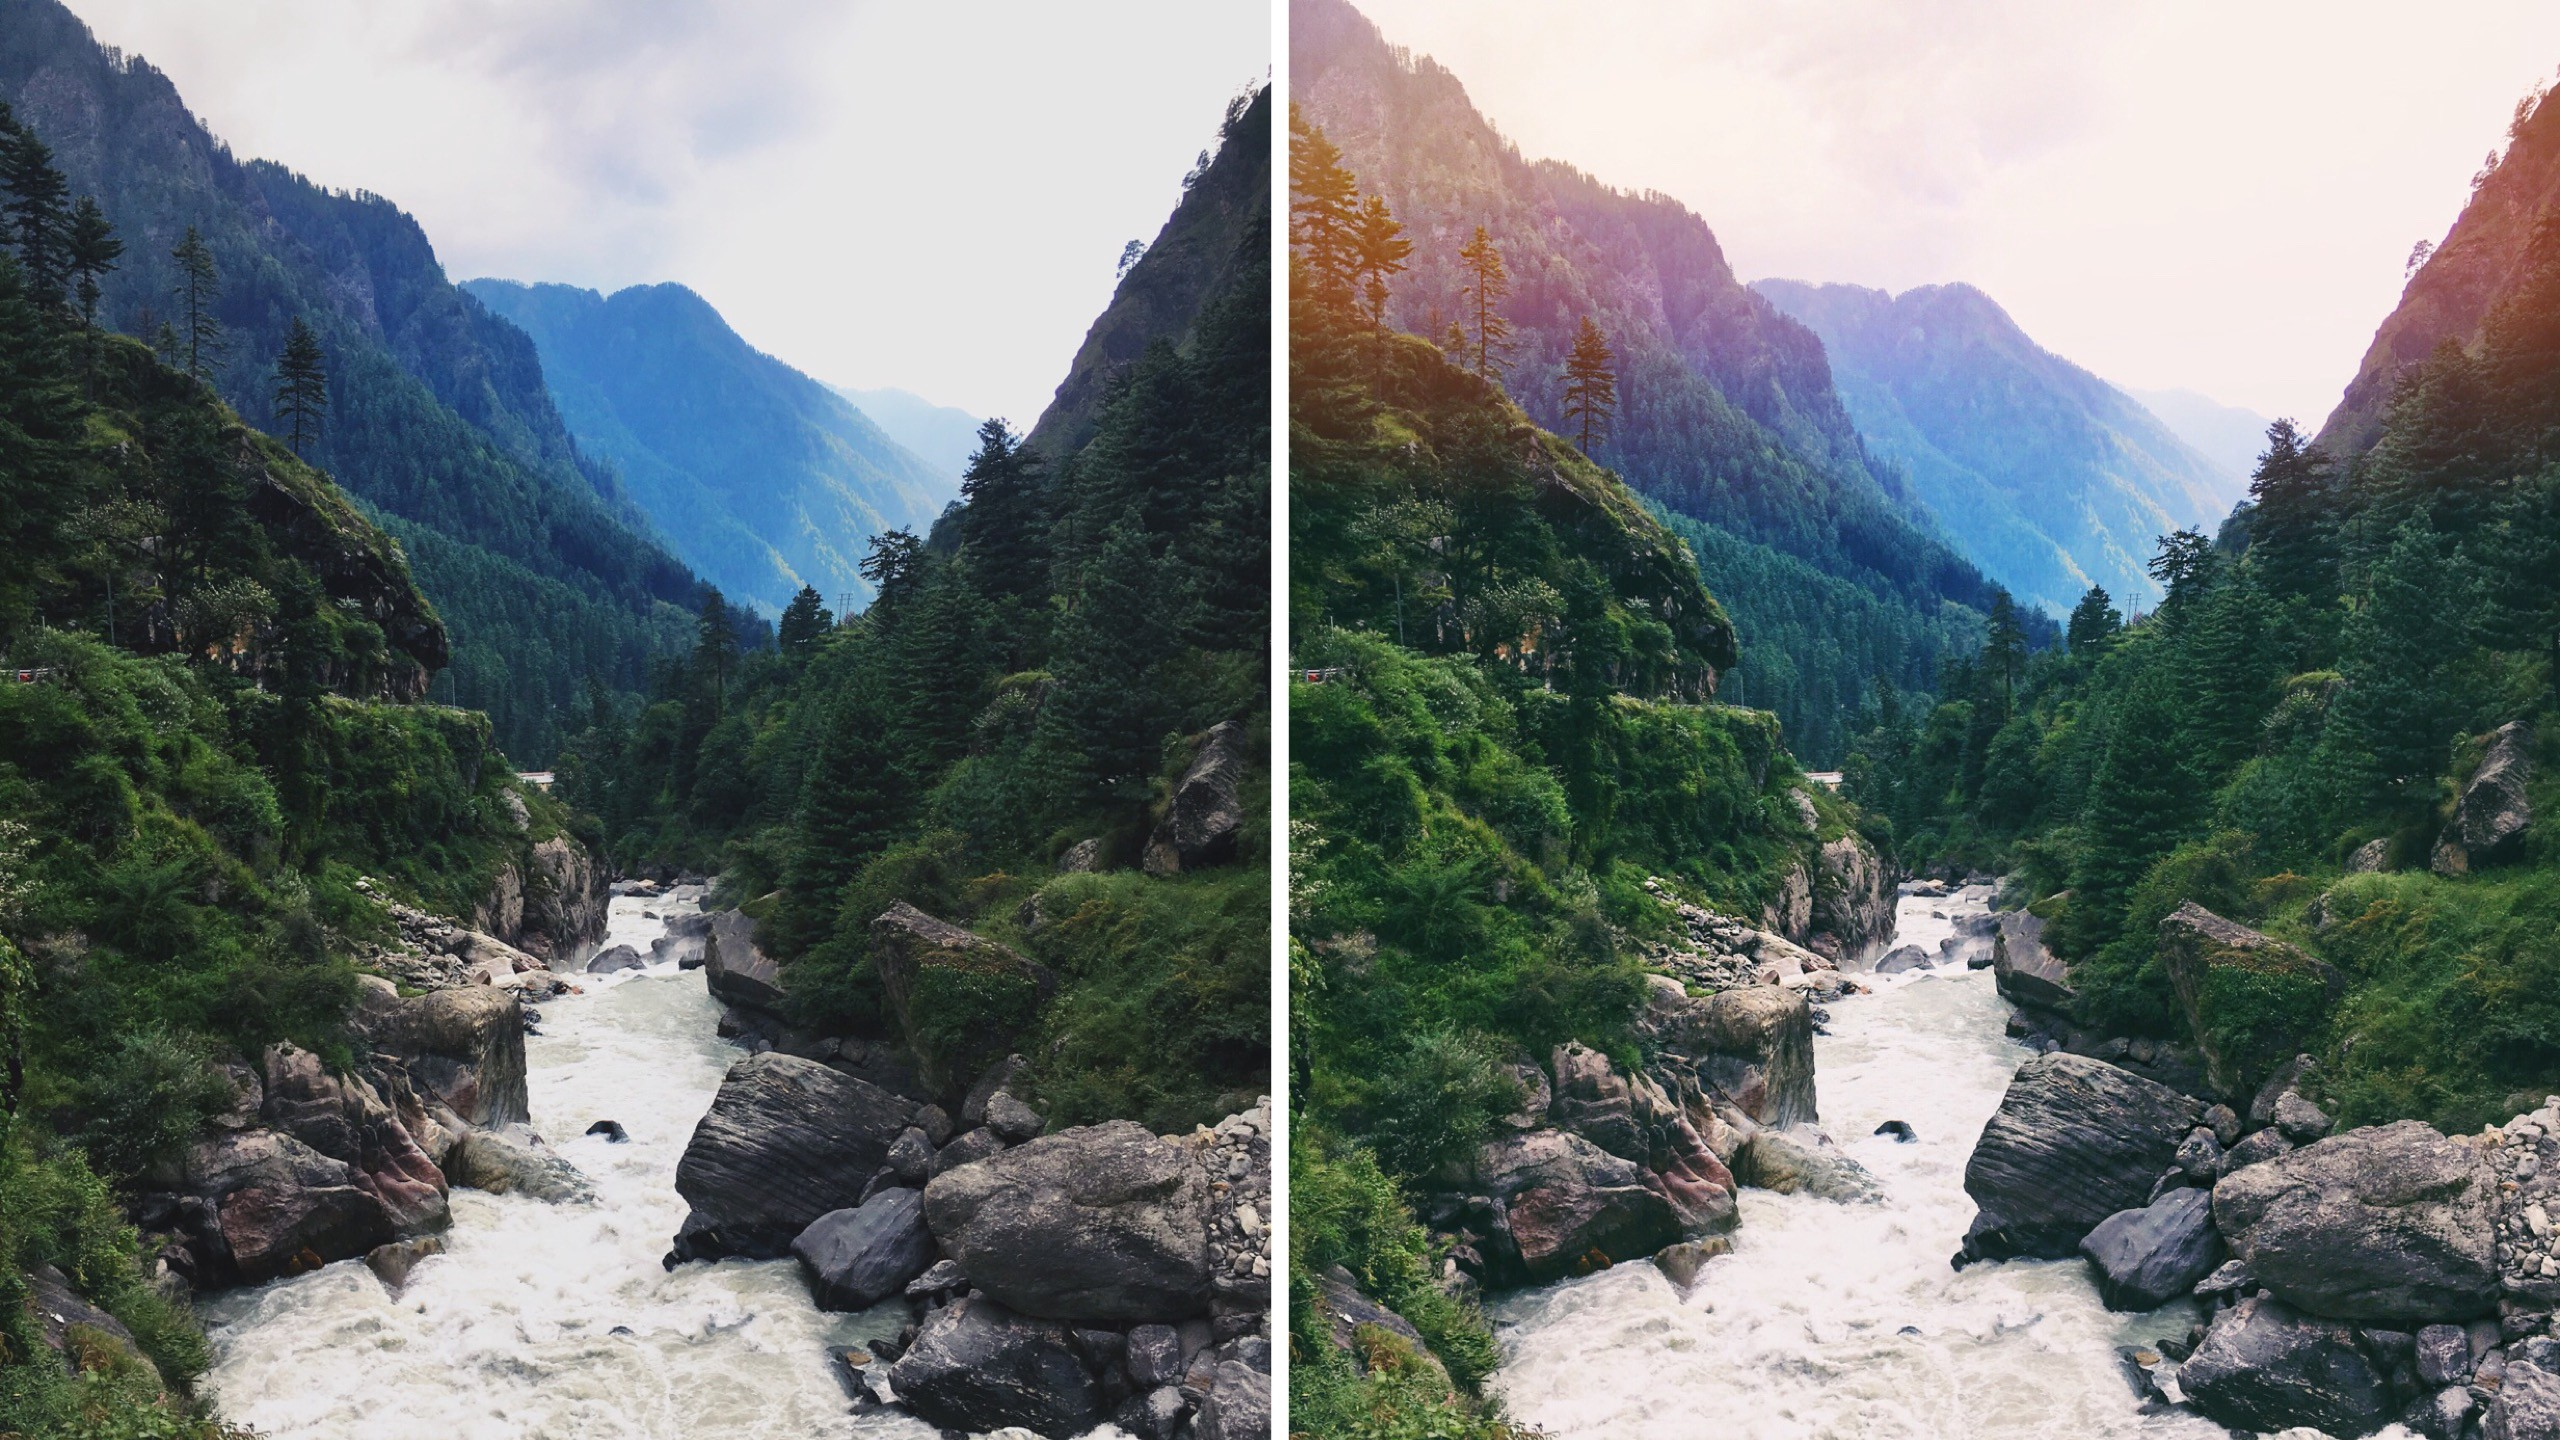 How to: Edit Photos for Instagram (A Step by Step Guide)